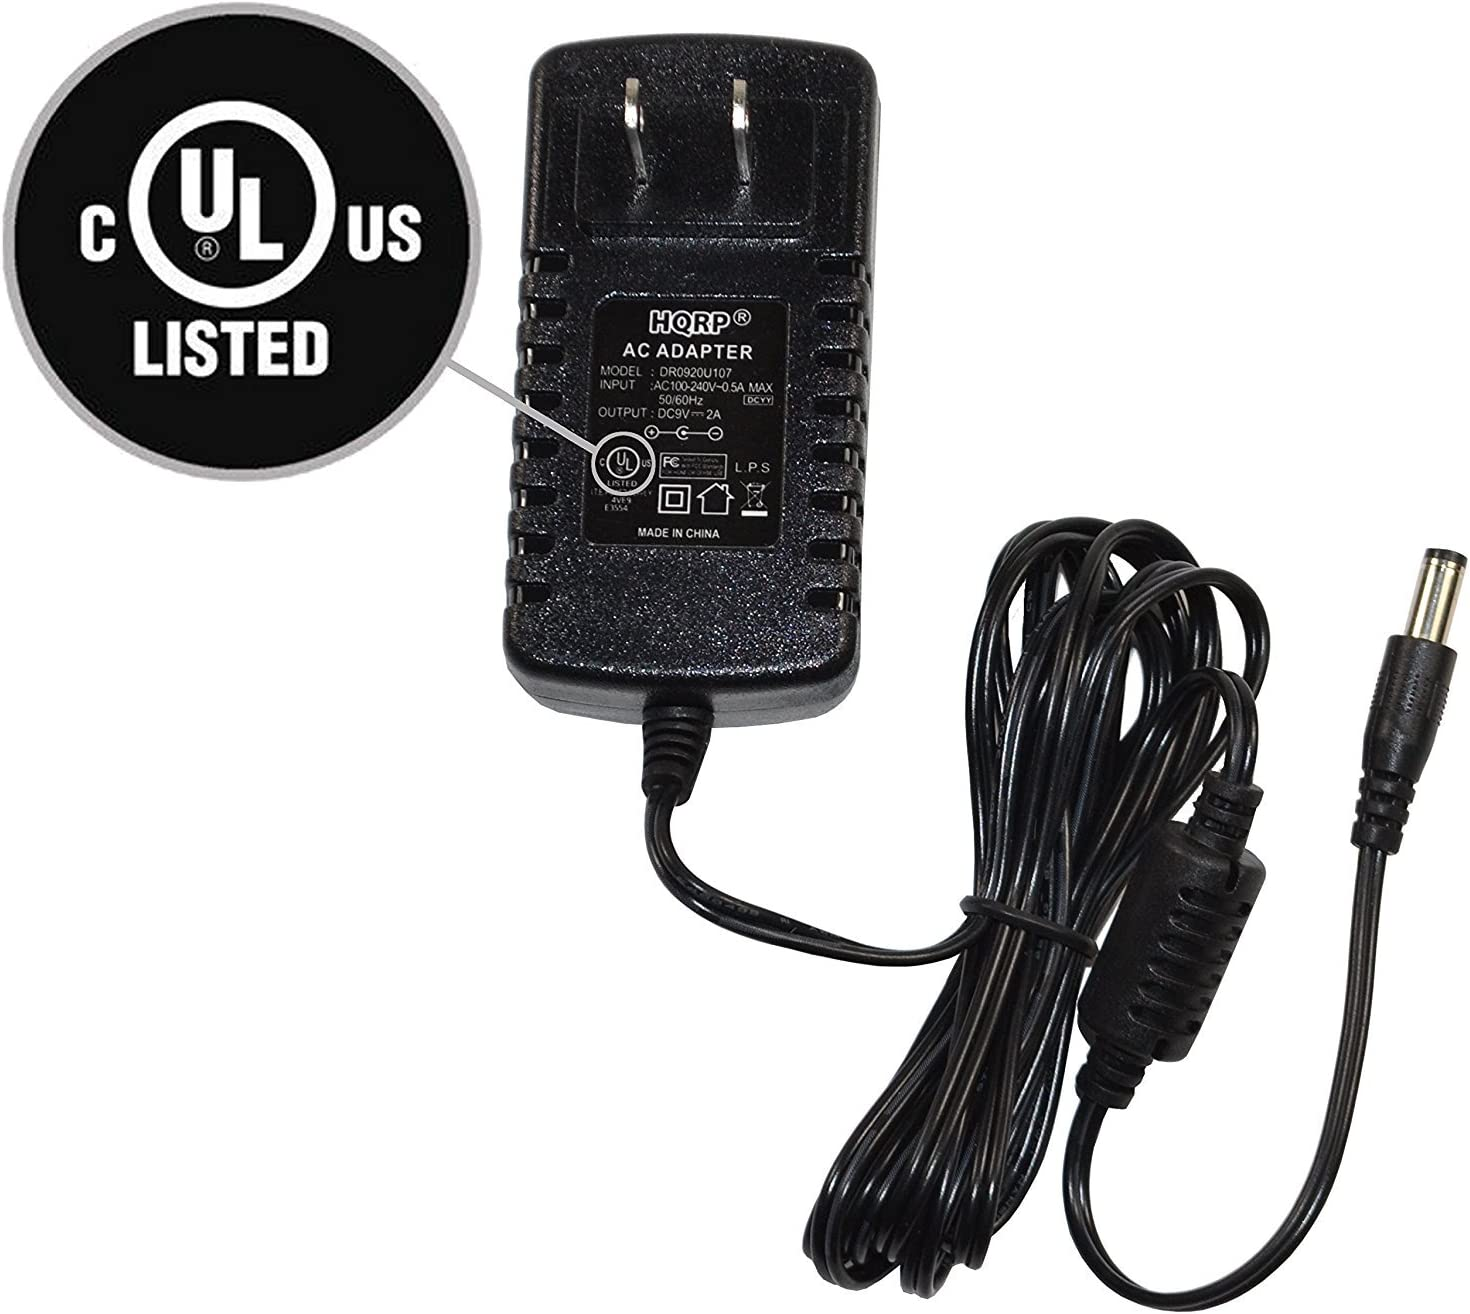 Replacement Power Supply for KORG AX1G 9V HS